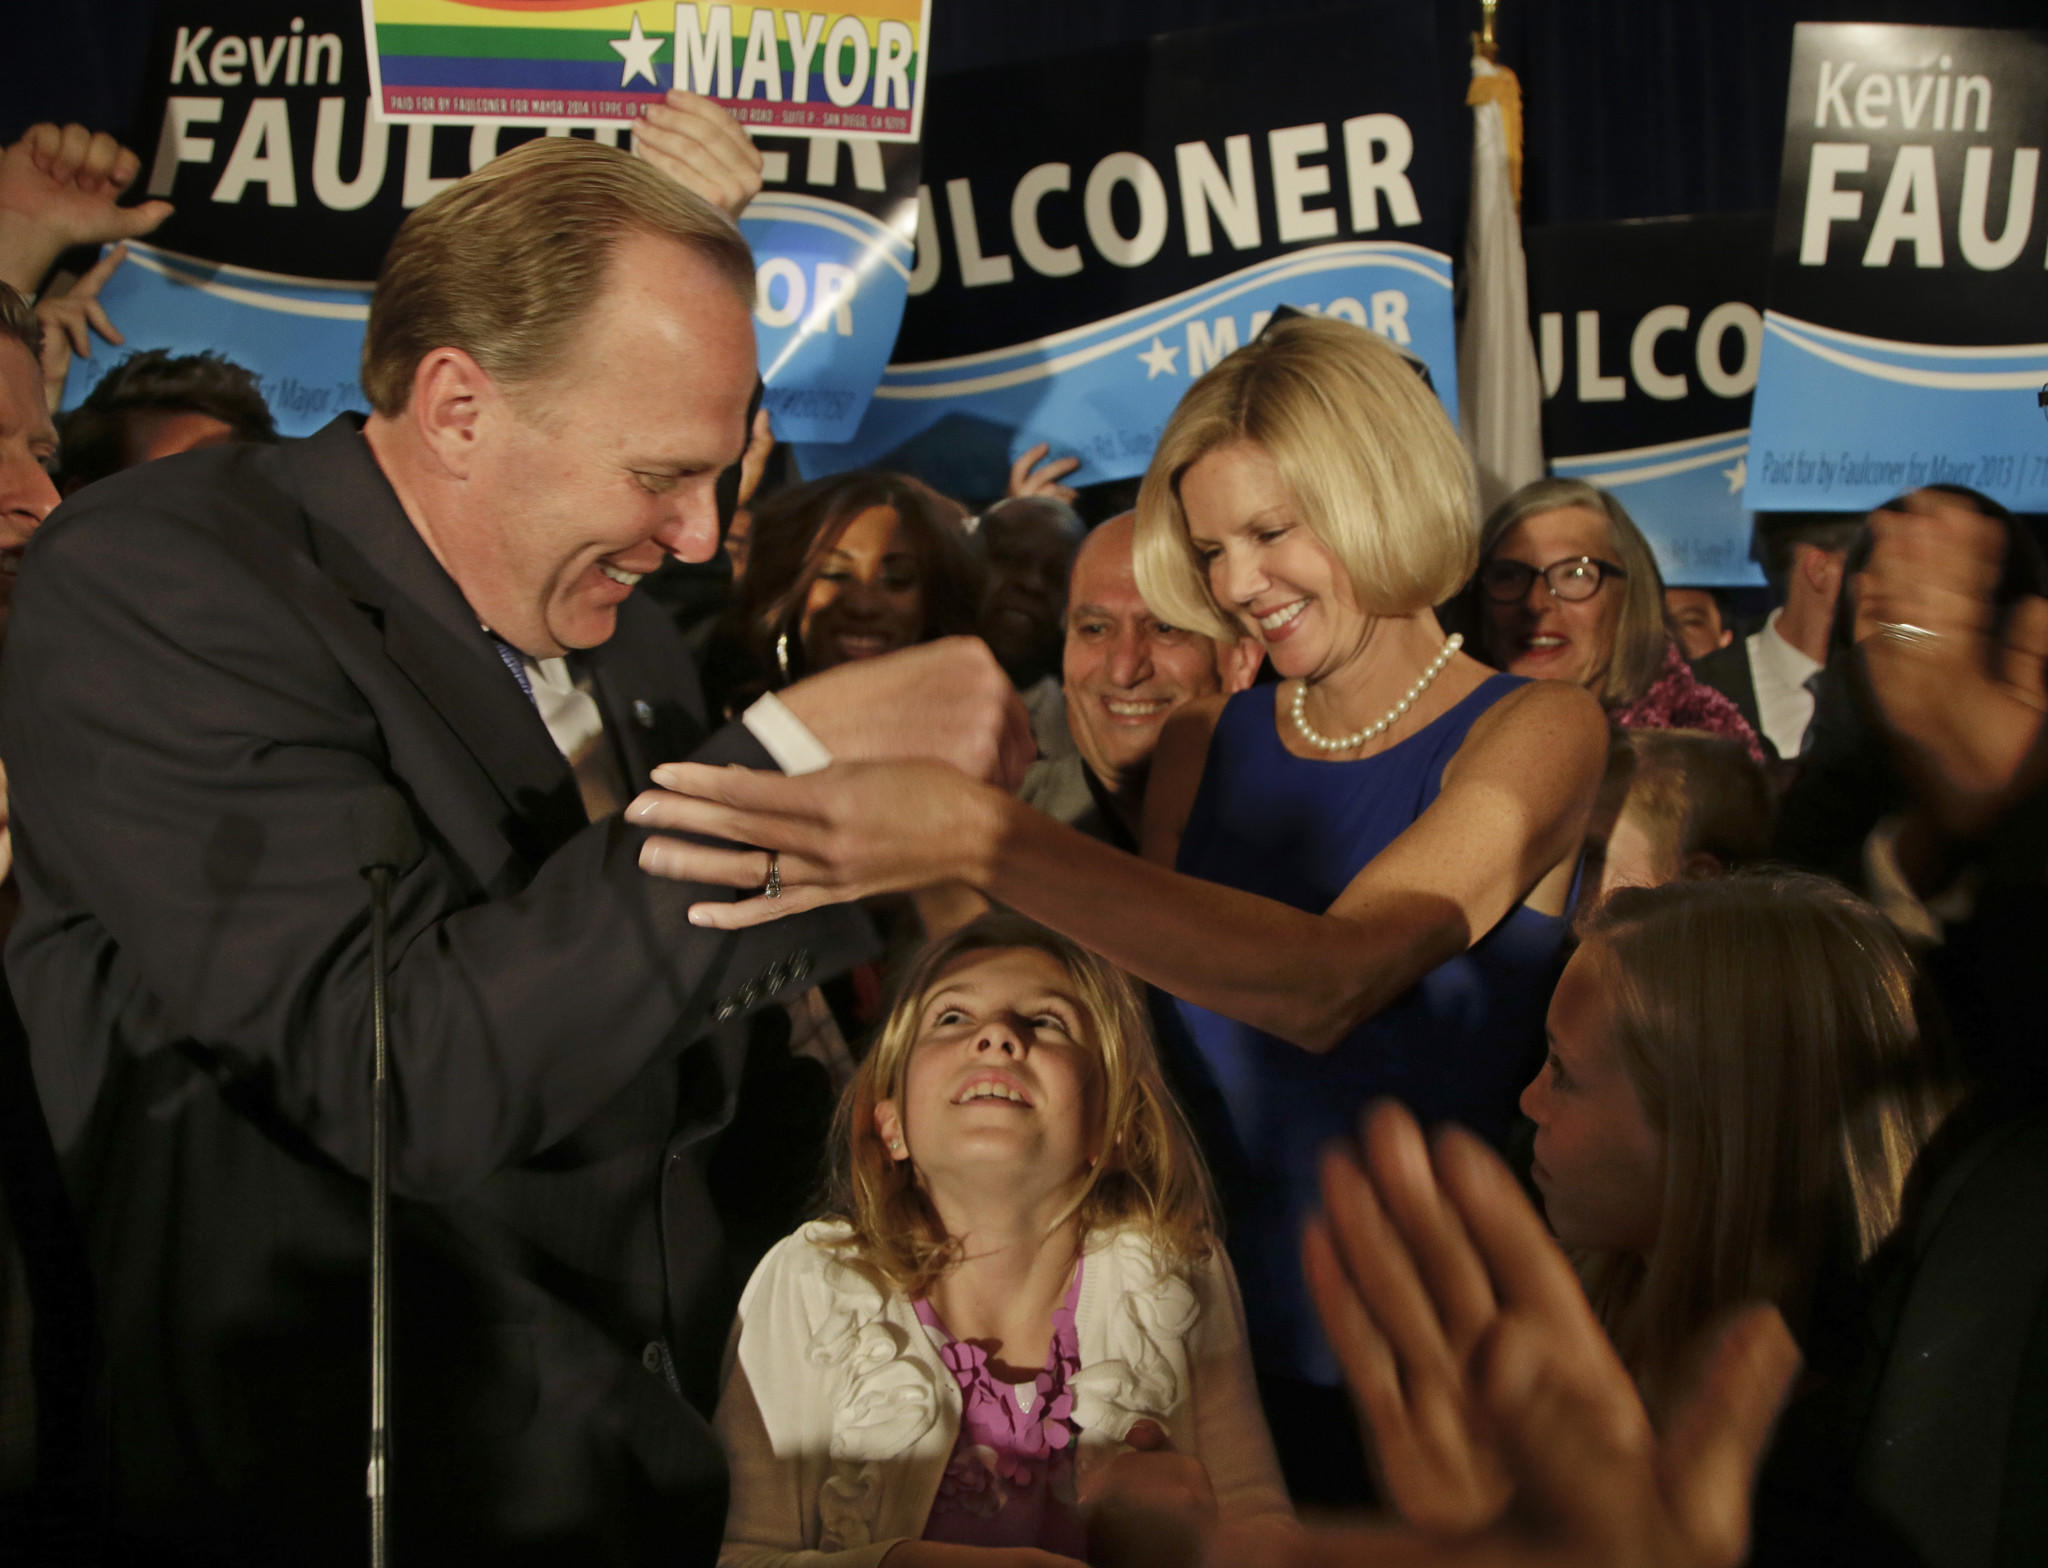 San Diego mayoral candidate Kevin Faulconer celebrates with his wife, Katherine, as their daughter looks up from below after Faulconer addressed his supporters at a rally last month in San Diego.